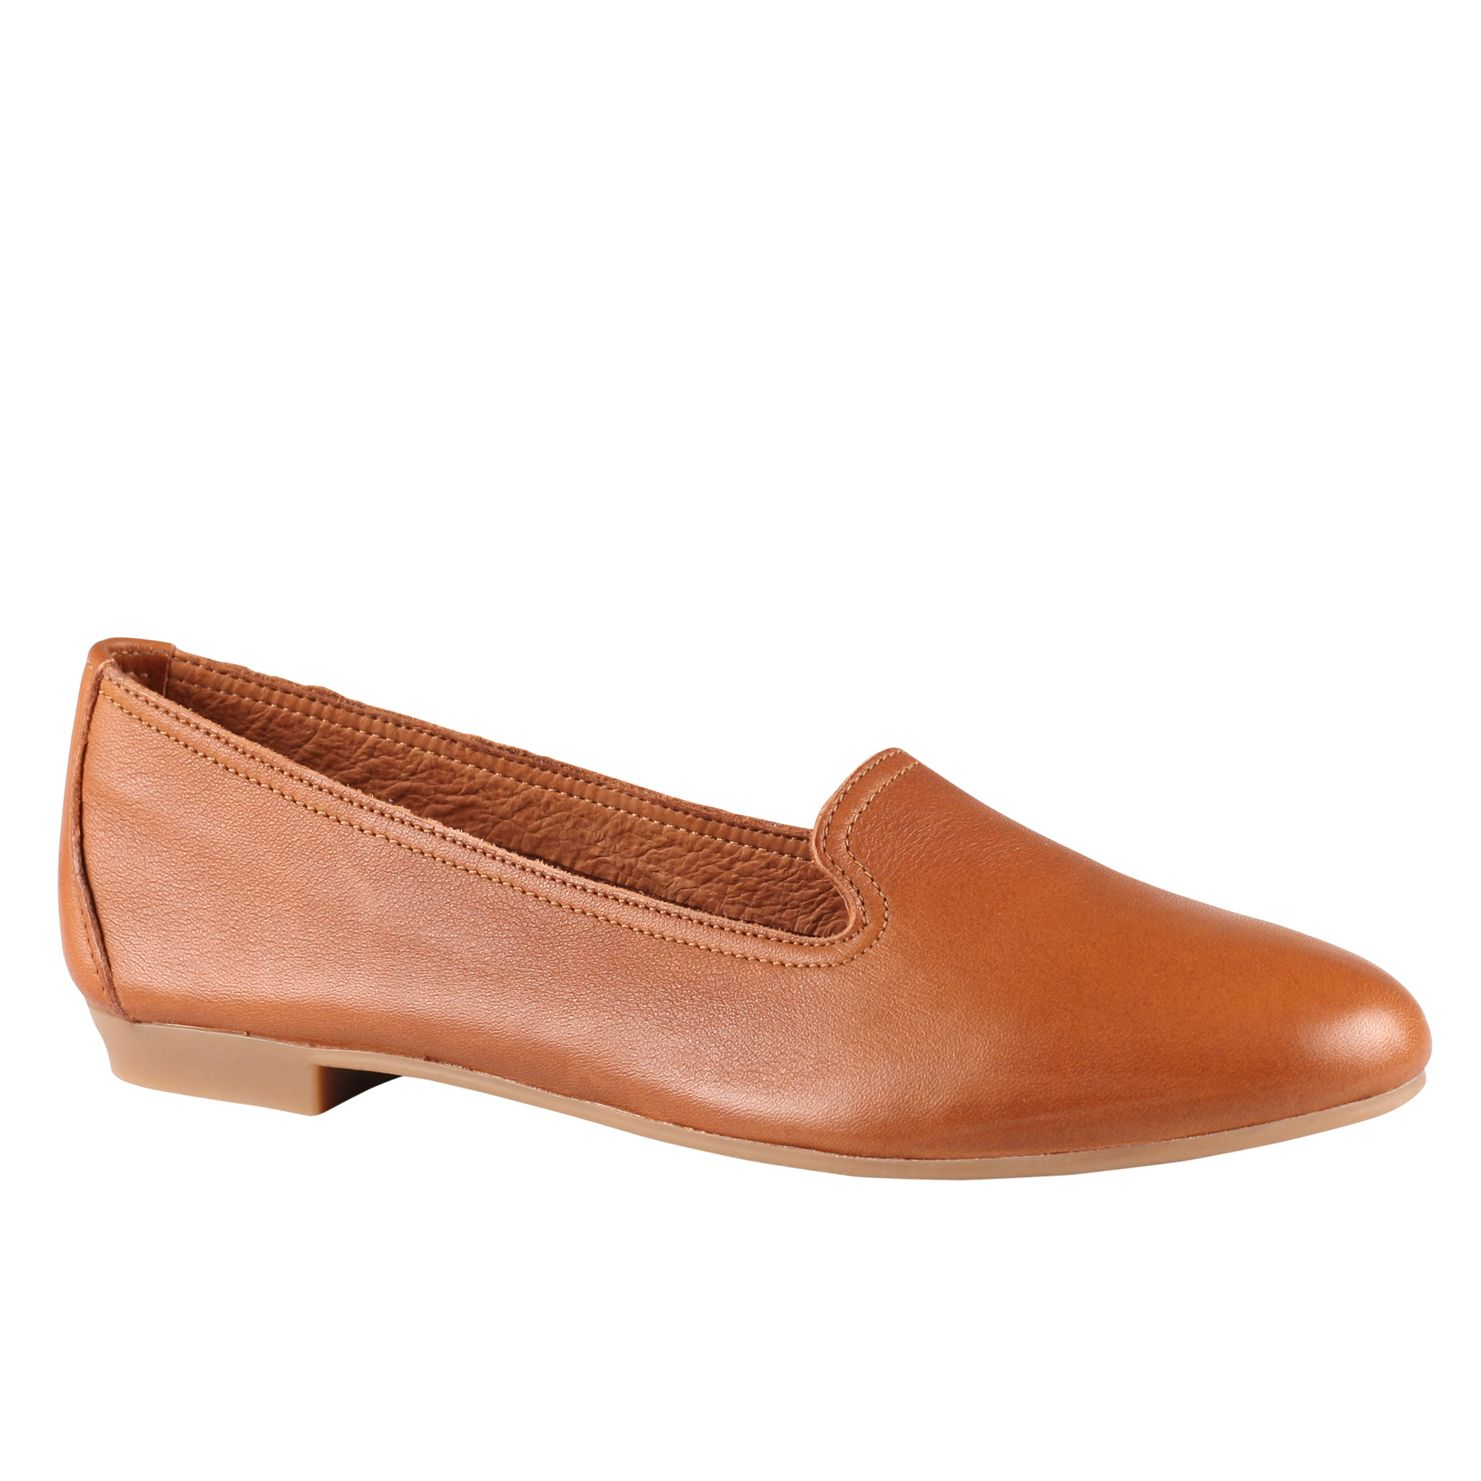 Zenica leather loafer shoes